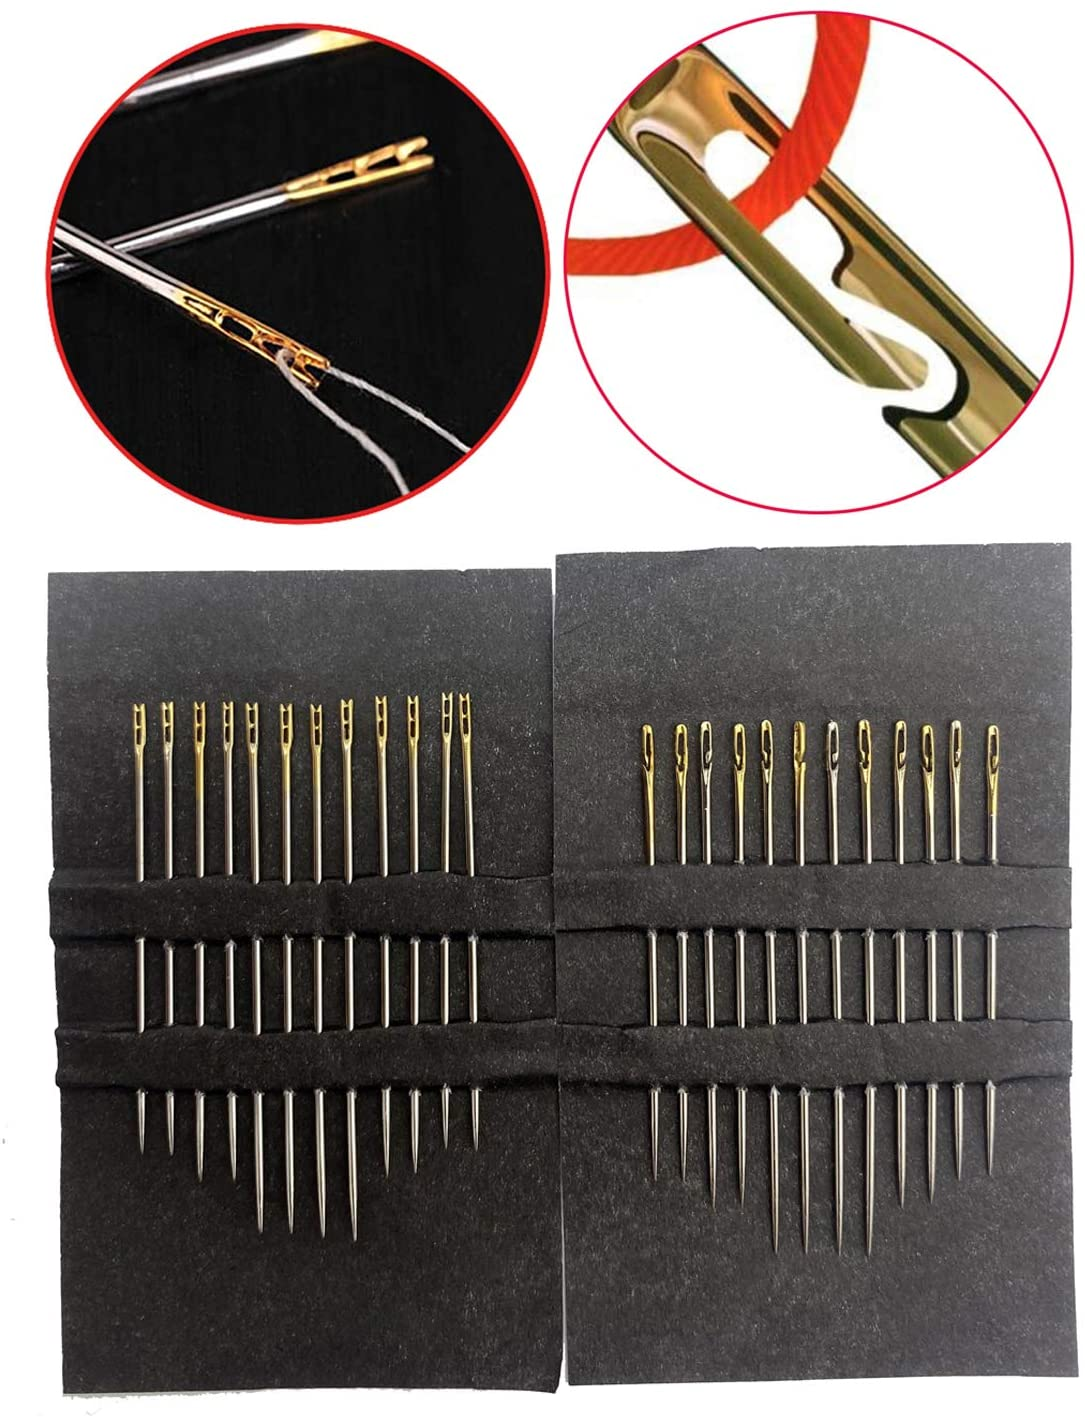 Wakaka One Second-Needles Self Threading Hand Needles Stitching Pins Home Household Tools for Old People, Set of 12/24 (24 Pcs)